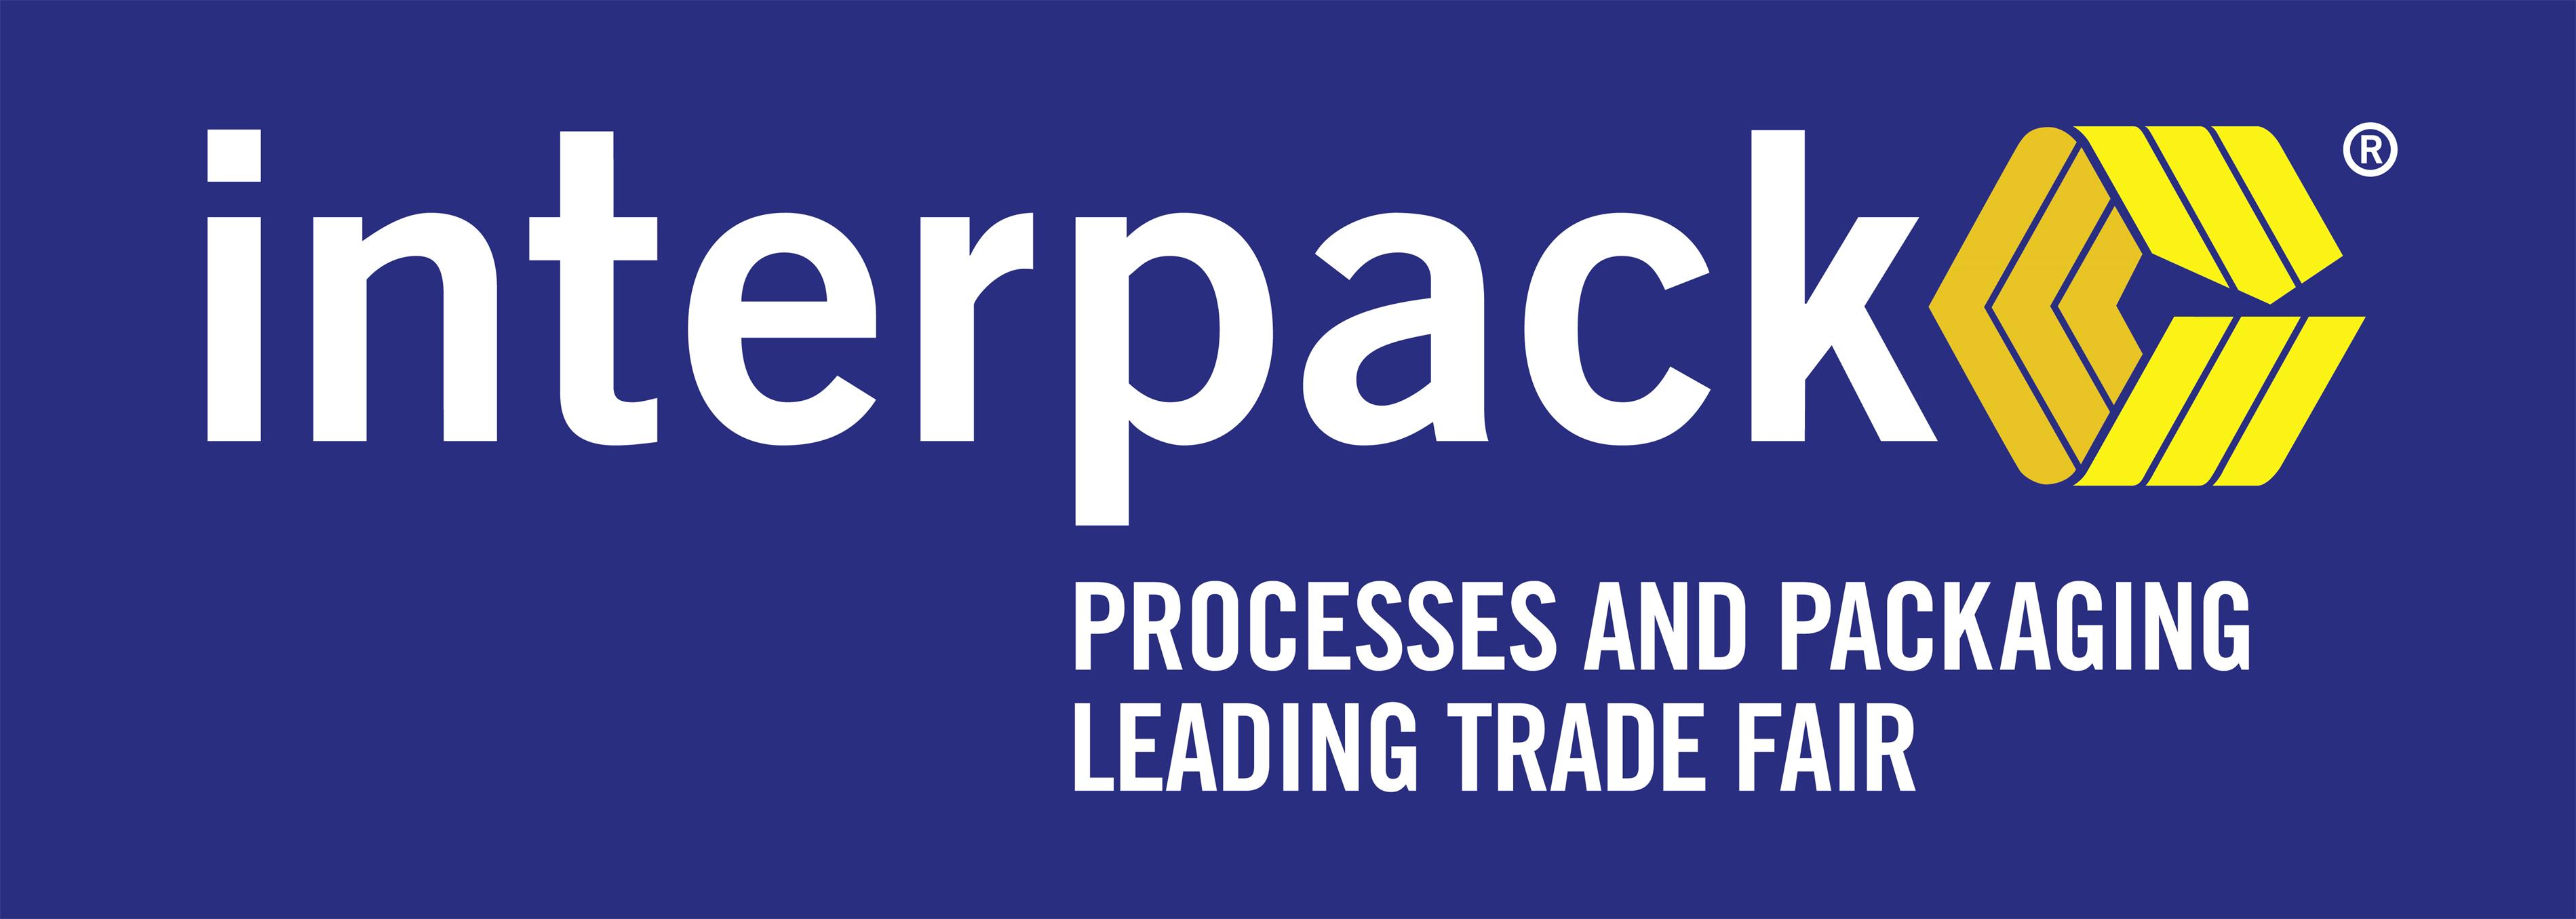 interpack We are